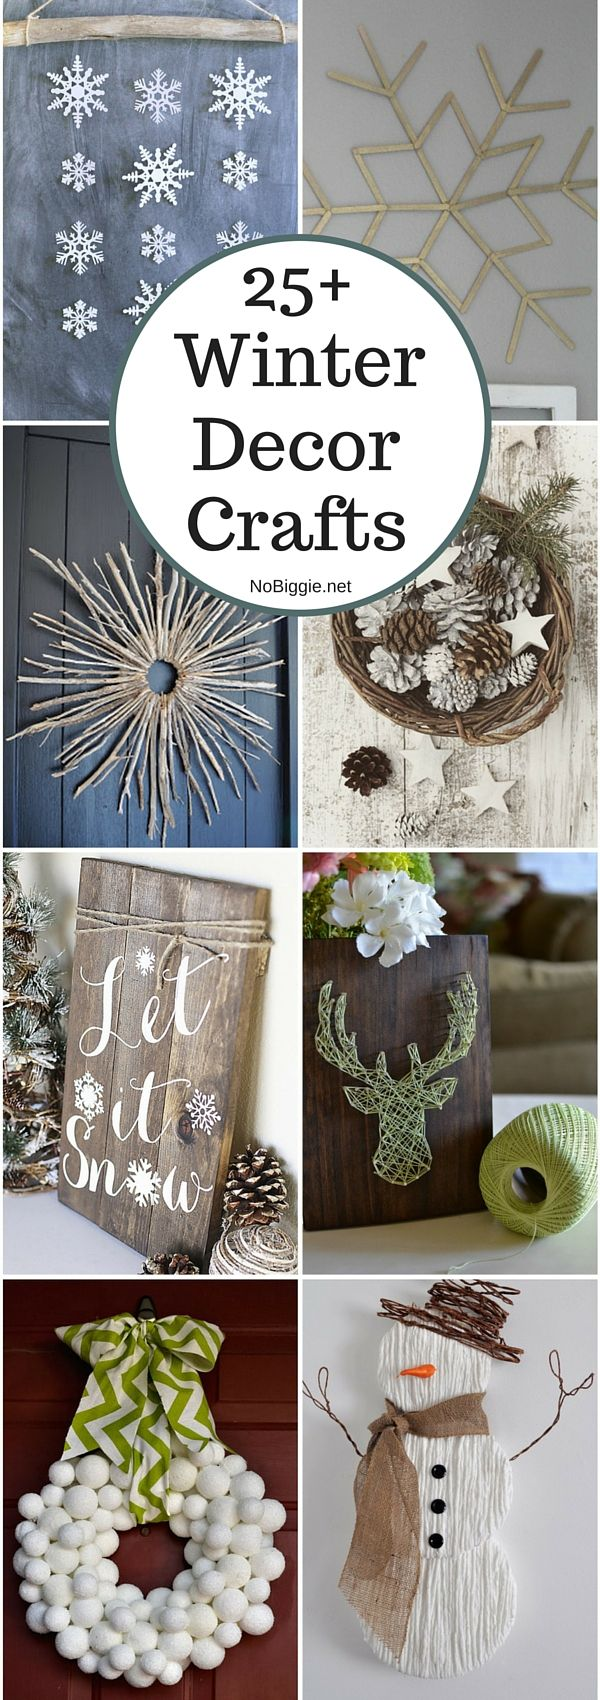 Best ideas about january crafts on pinterest winter